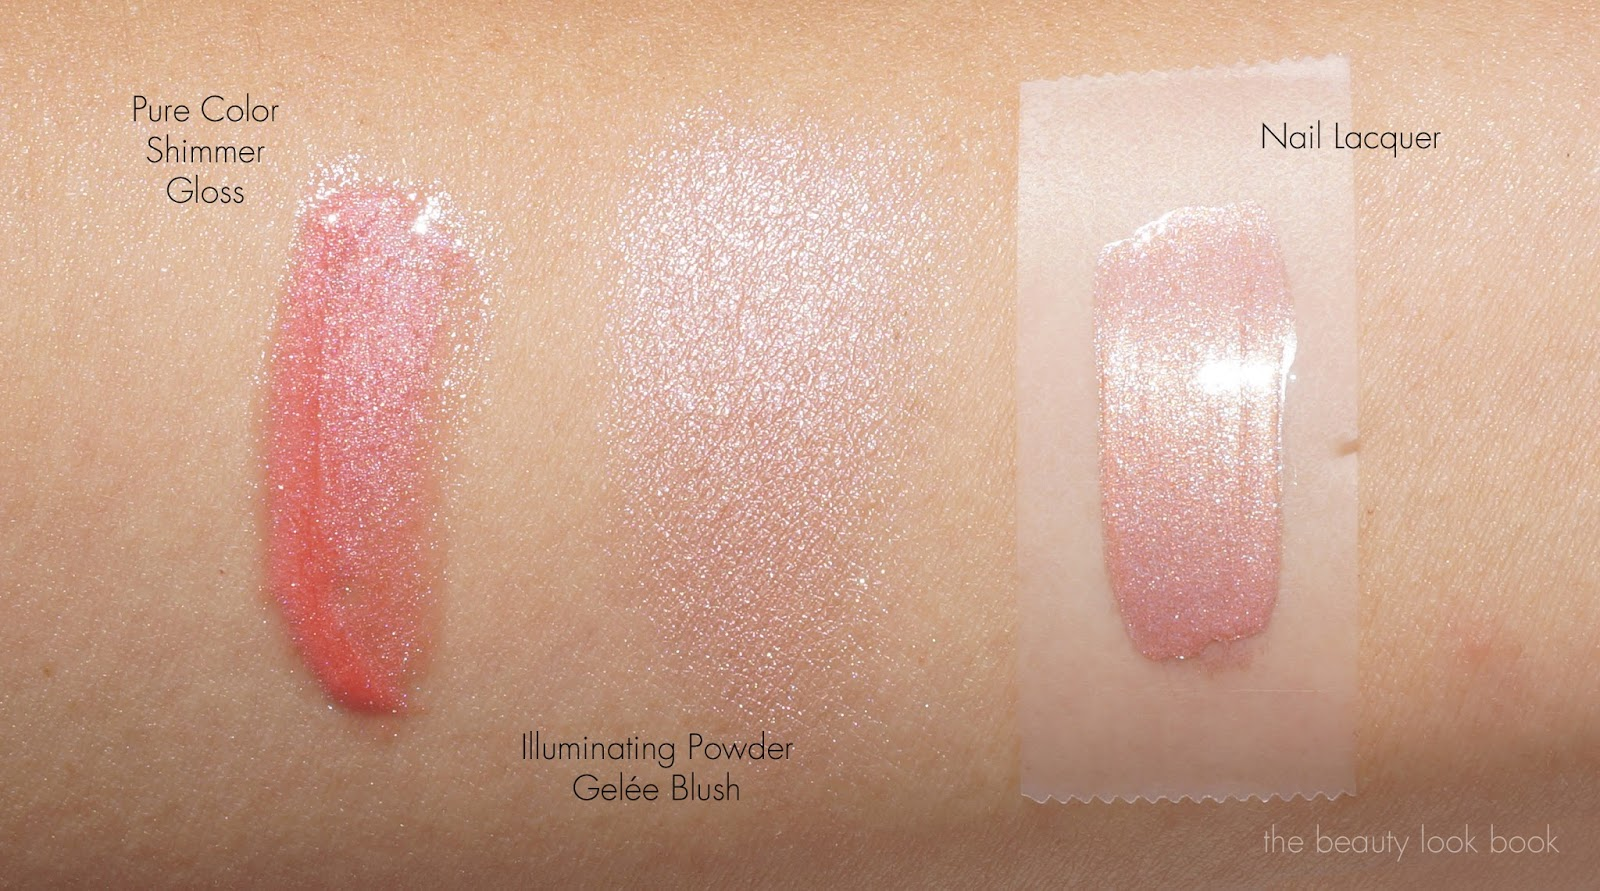 Estee Lauder Crystal Baby Pure Color Long Lasting Nail Lacquer (21.00) advise